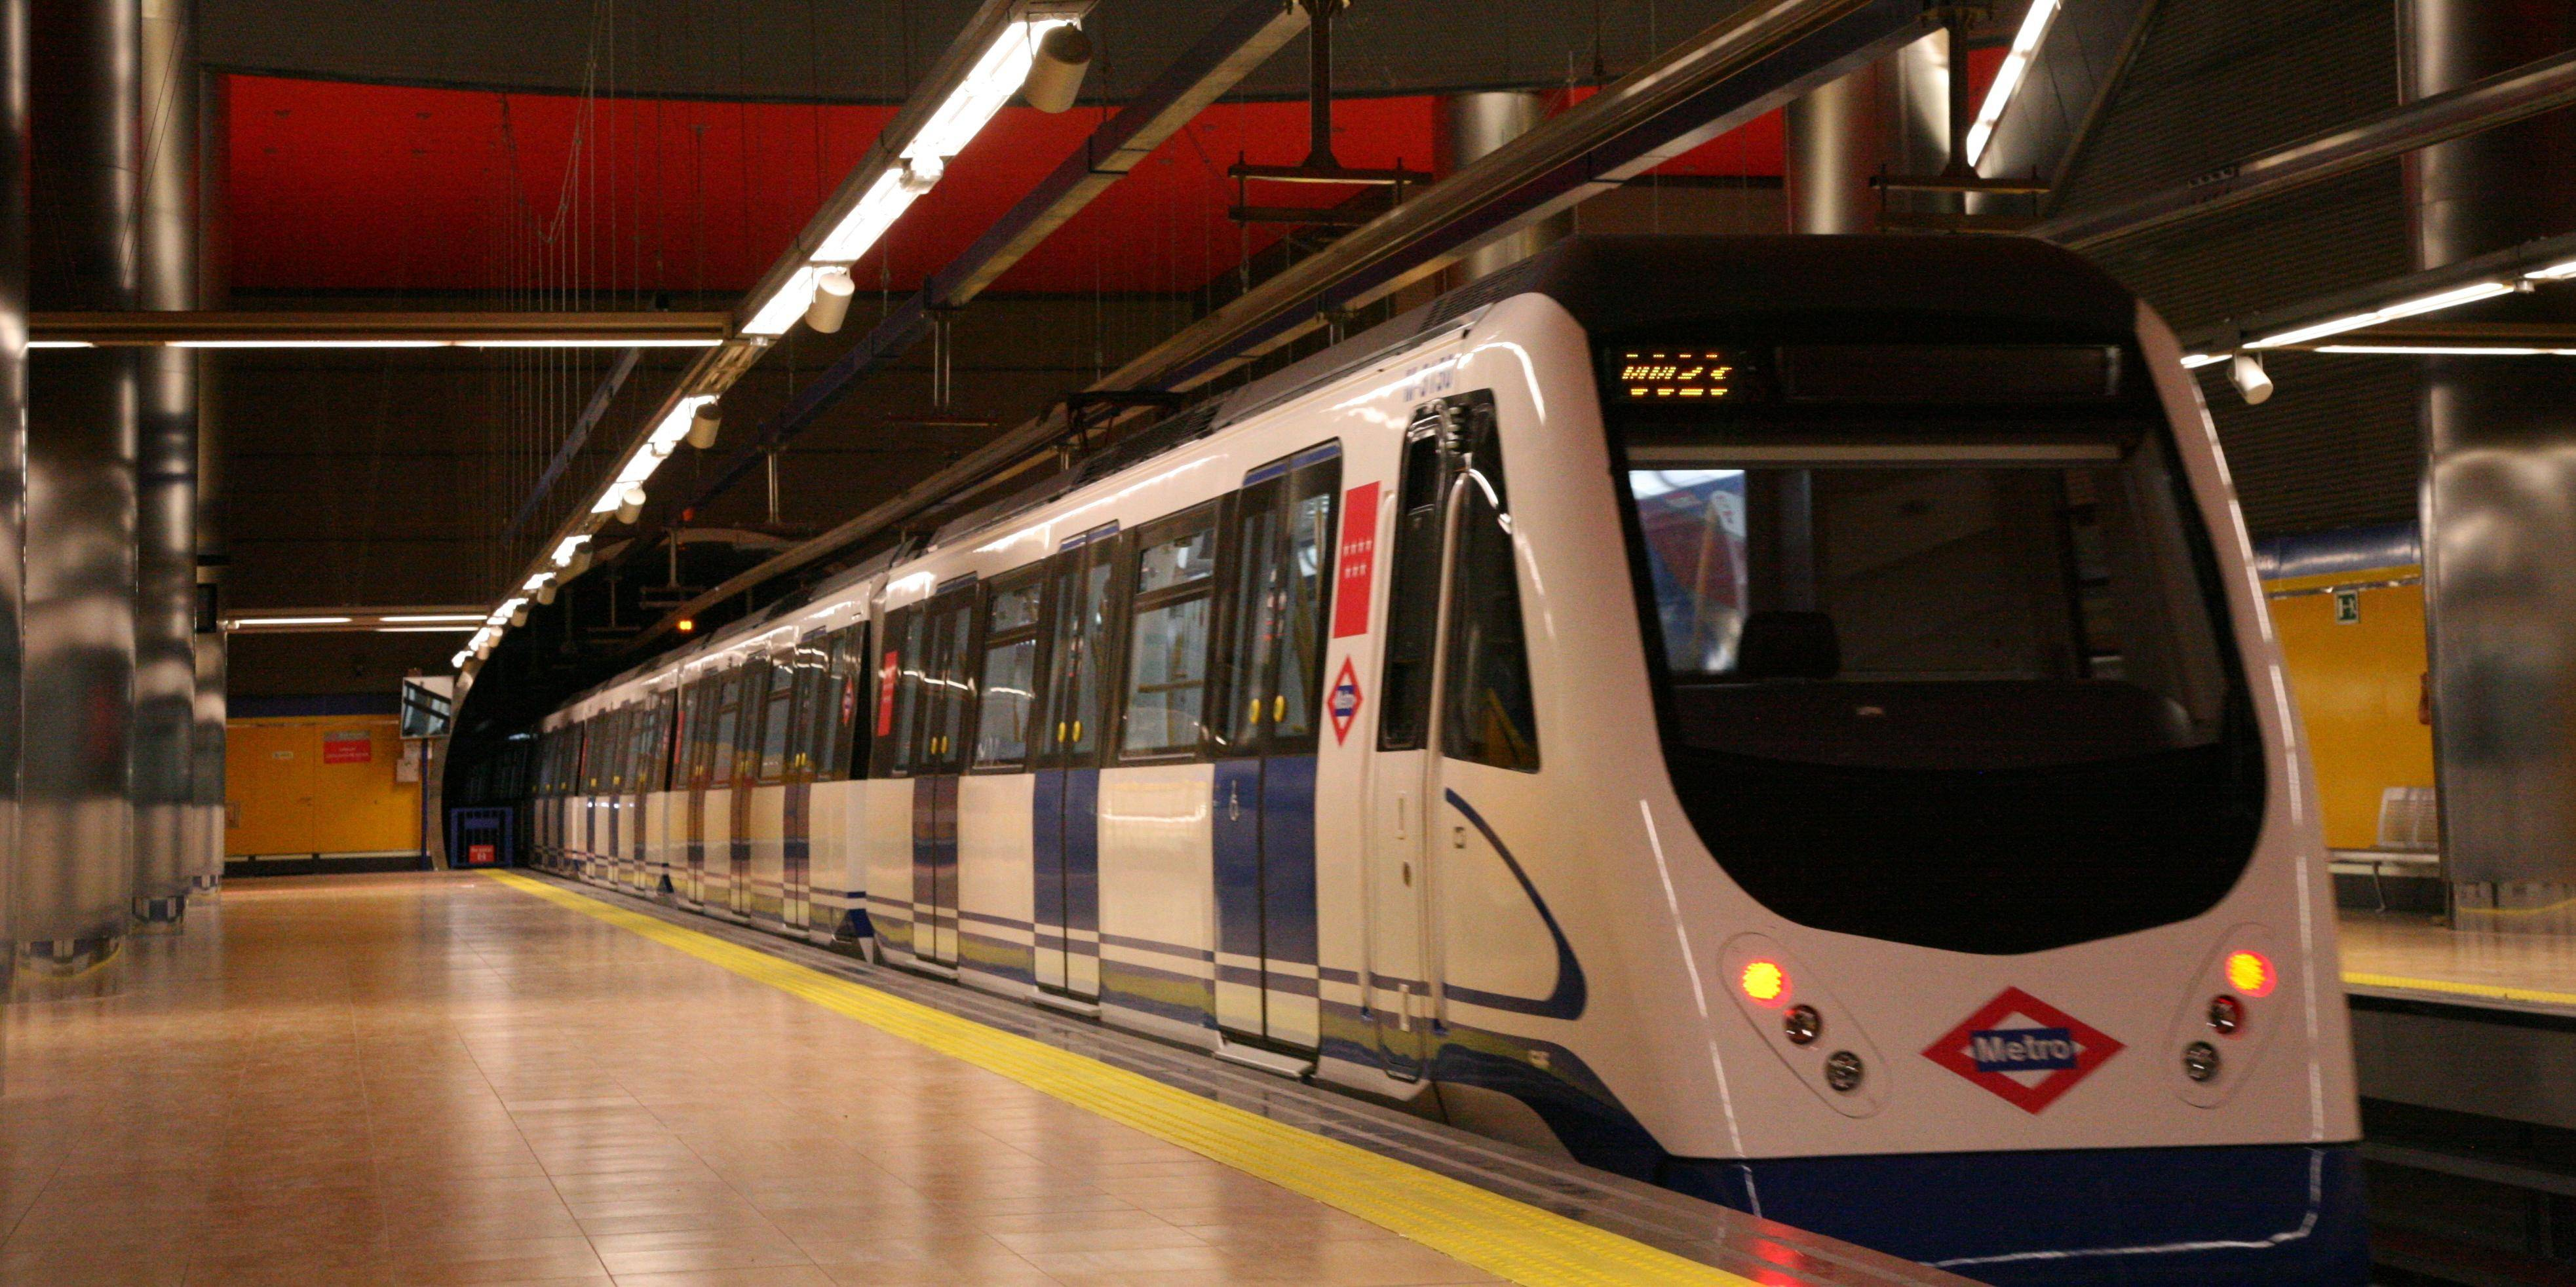 The Region of Madrid invests 3.8 million in the maintenance of Metrosur facilities